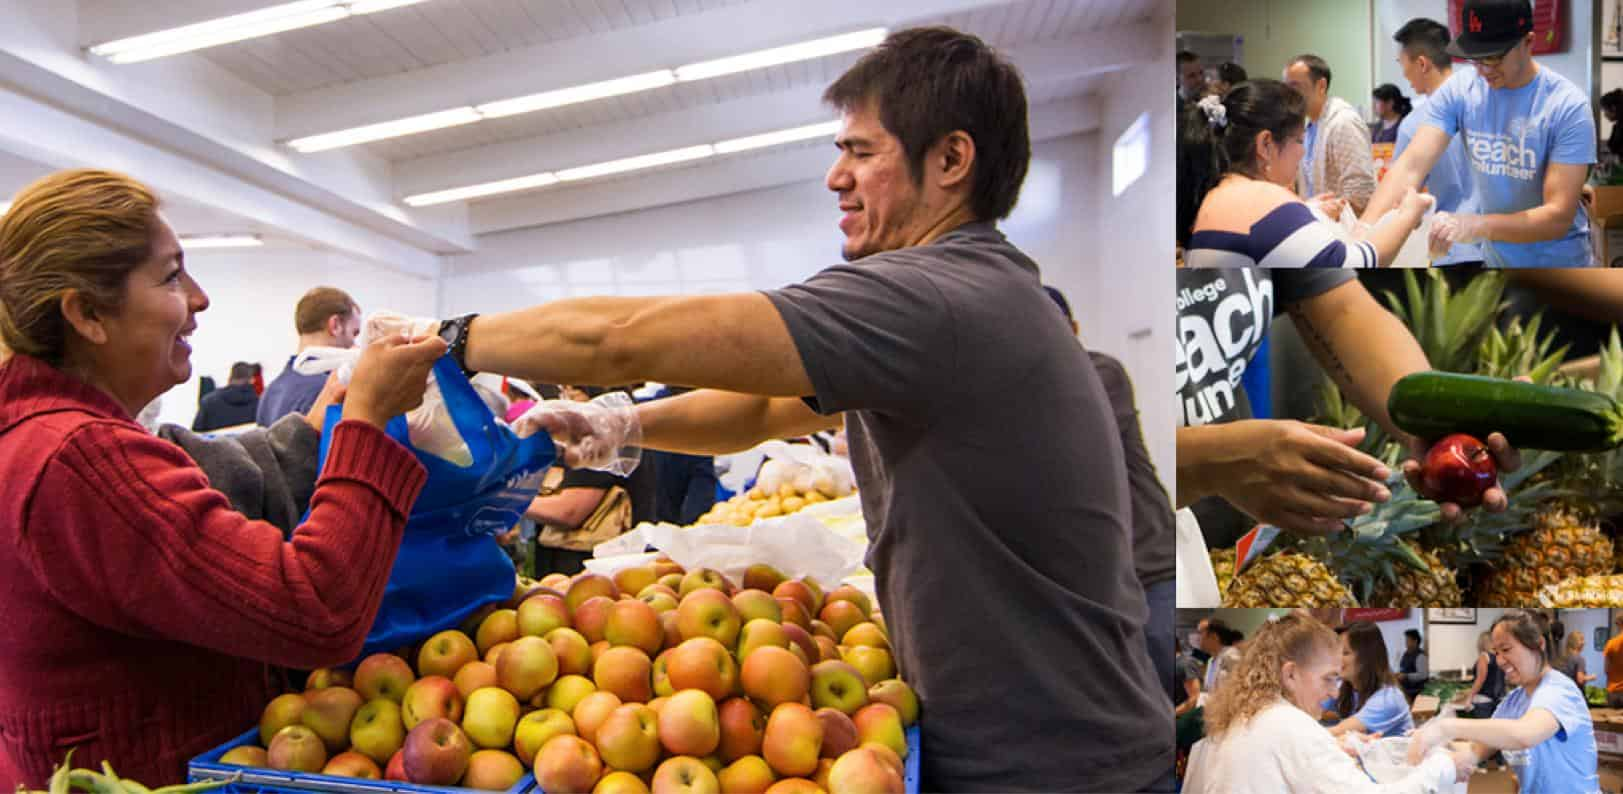 superior Volunteer Soup Kitchen Orange County #7: Stanbridge University co-founded the Free Pantry Organization in 2013 and has since donated over 840,000 lbs of fresh food to the hungry in Orange County.